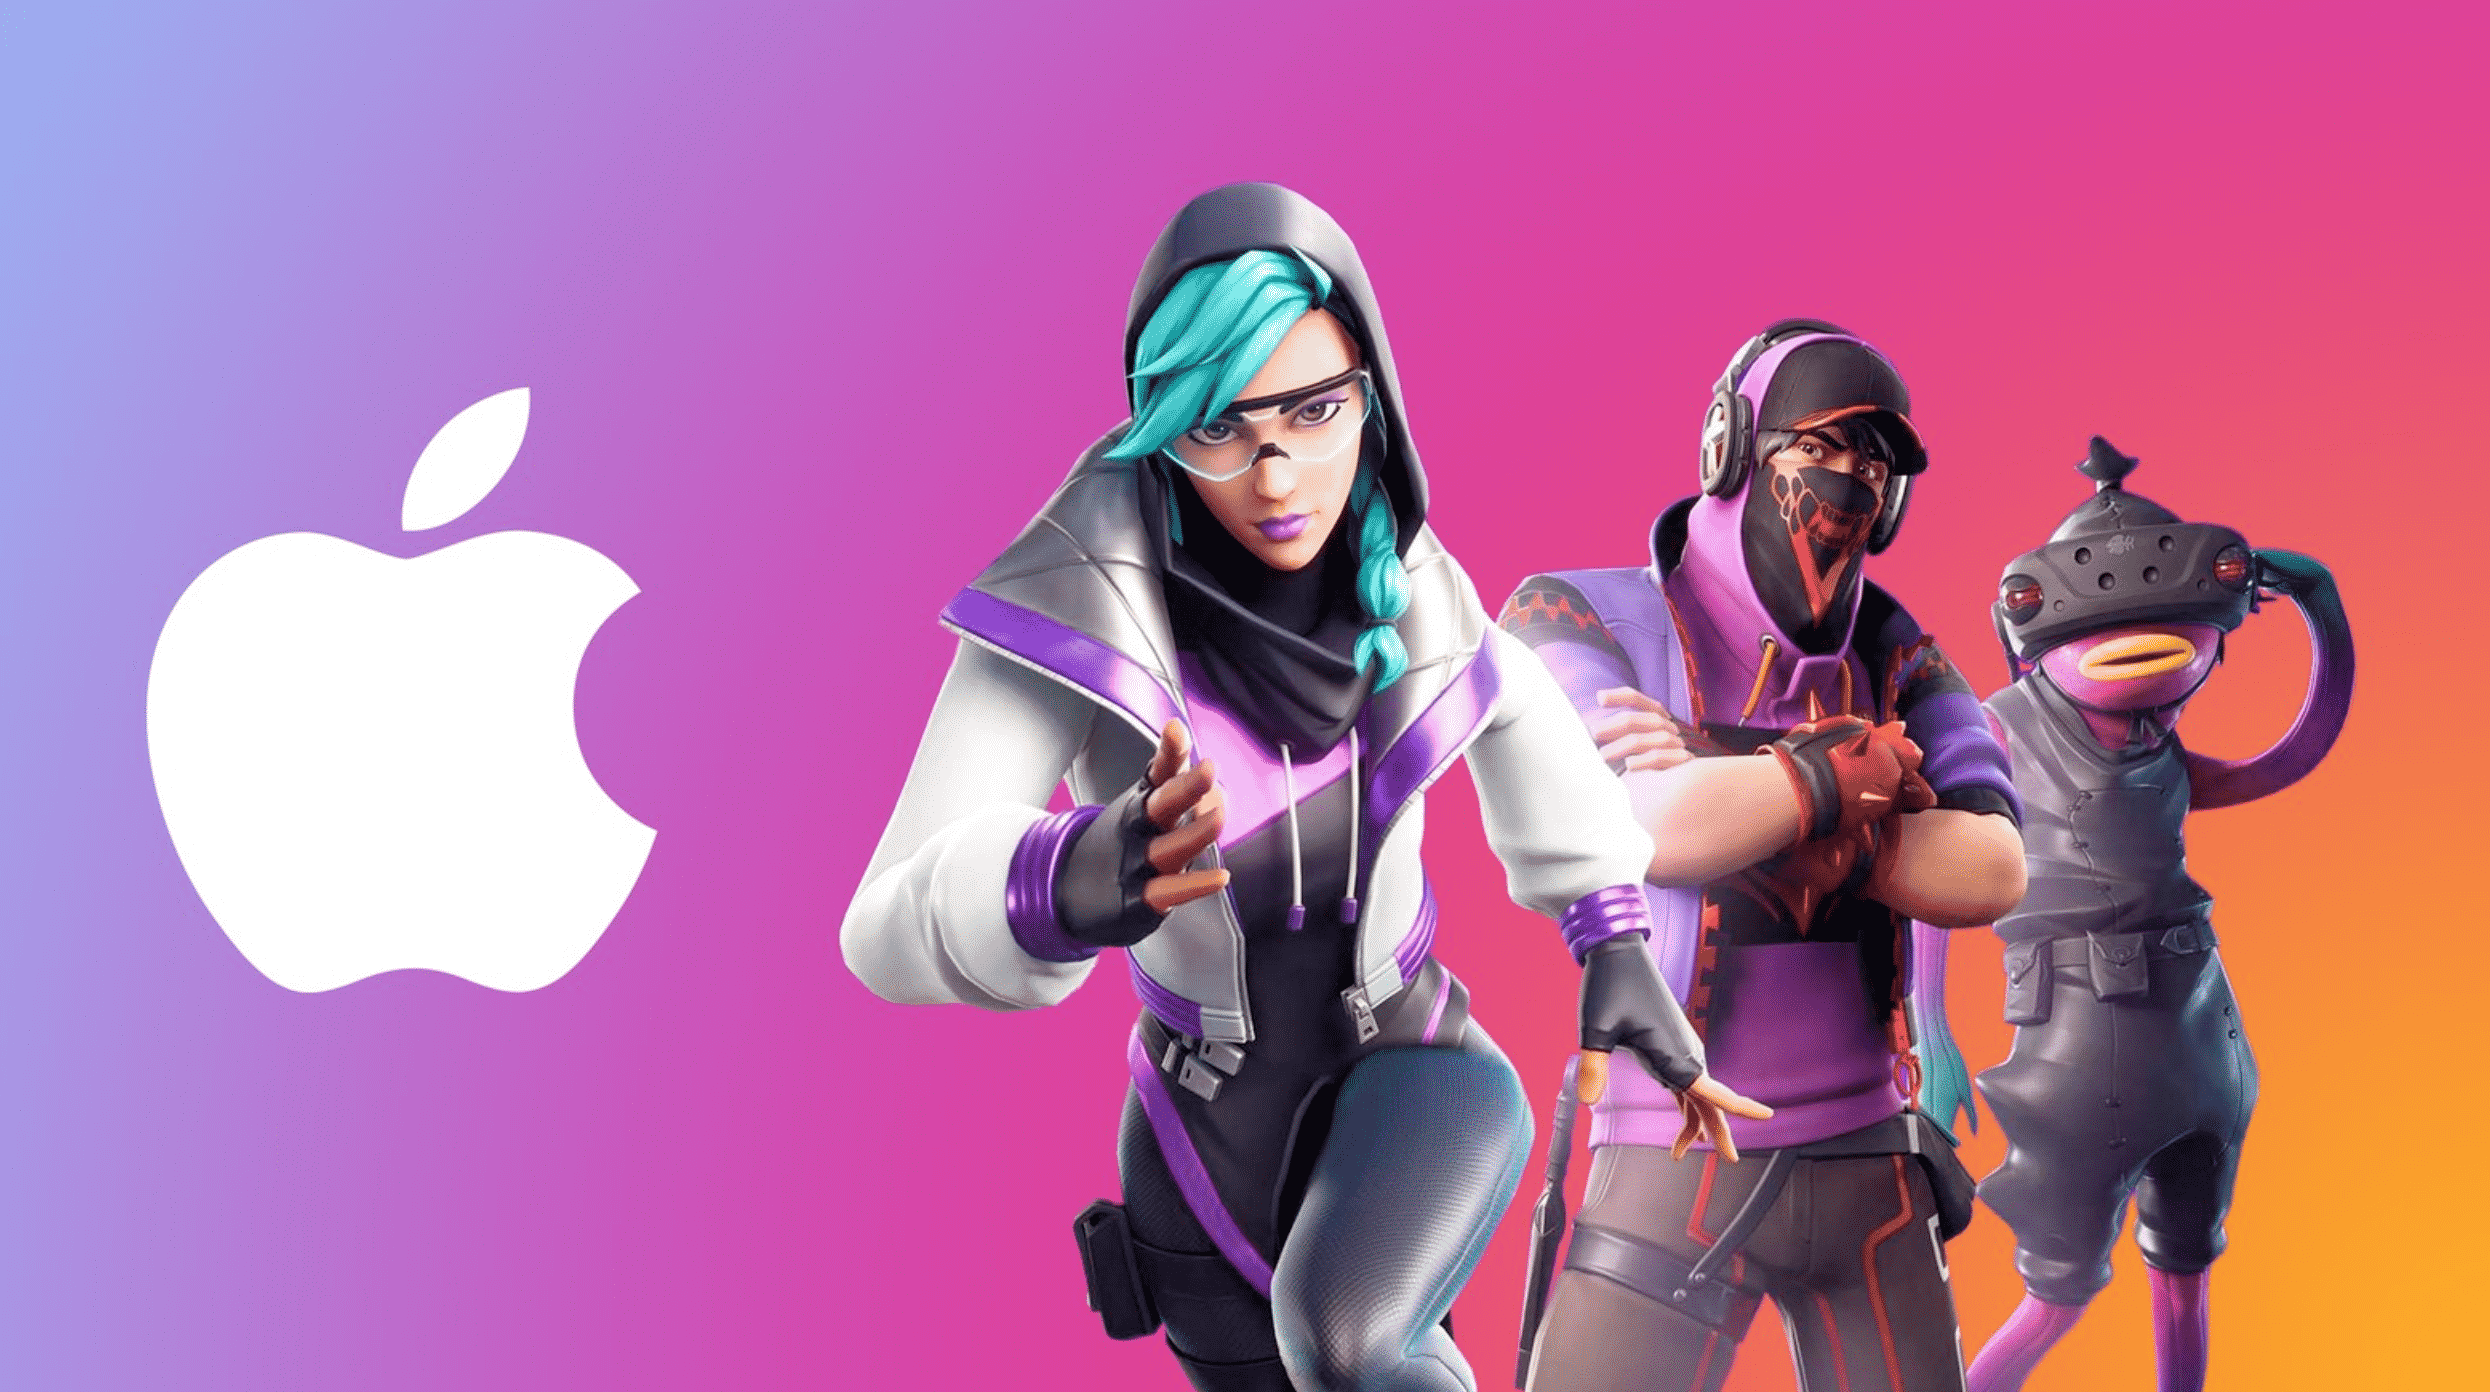 Epic Games files for Fortnite and developer account reinstatement